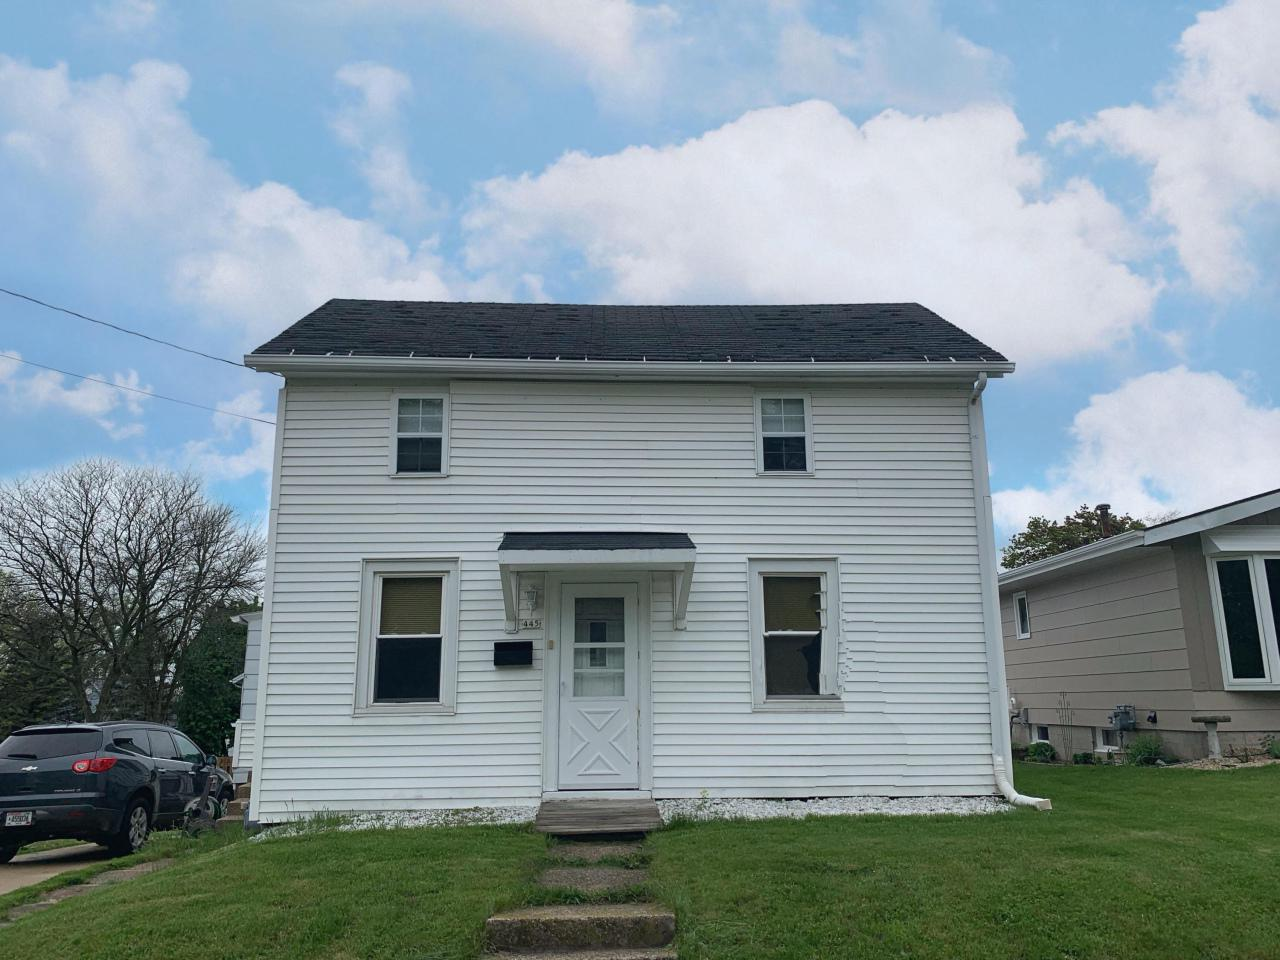 Seller is in the process of having the garage and house roof redone. Priced under assessed value! Why rent when you can own..?? This home features some newer windows, newer flooring, new door, newer counter tops and so much more.  Be ready to be wowed by the gigantic master suite upstairs.  While, this property is considered a 2 Bedroom, it could easily be used as a 3 bedroom with the extra room upstairs.  Need extra storage space?  No problem! Extra large walk in closets and storage areas upstairs.  Enjoy your summers in the mostly fenced in back yard.  Plenty of room to relax or entertain.  Within walking distance to the Mill pond, shopping, parks, and restaurants.   Check this one out, you won't be disappointed.